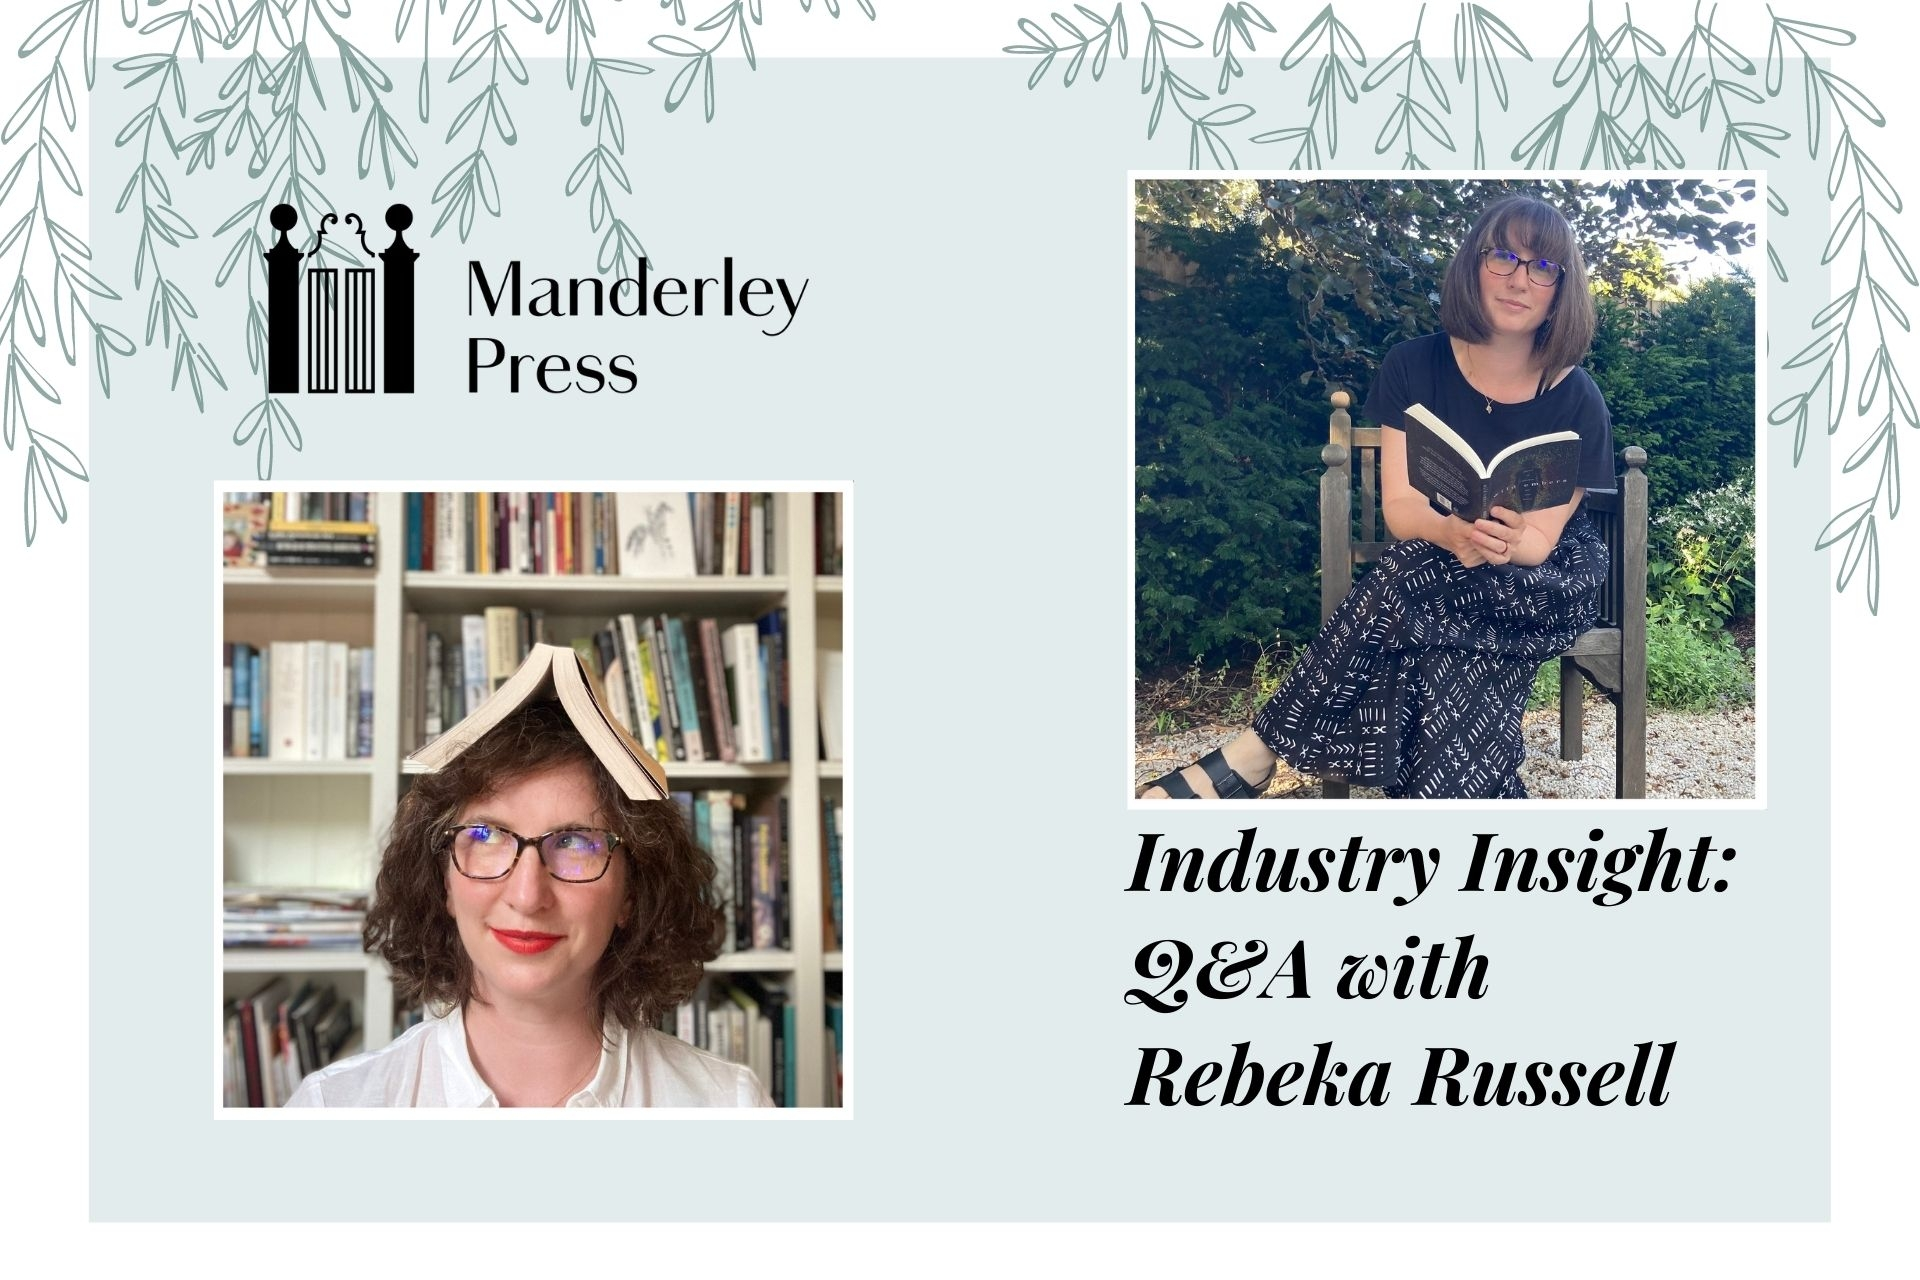 Industry Insight: Q&A with Rebeka Russell (Manderley Press)